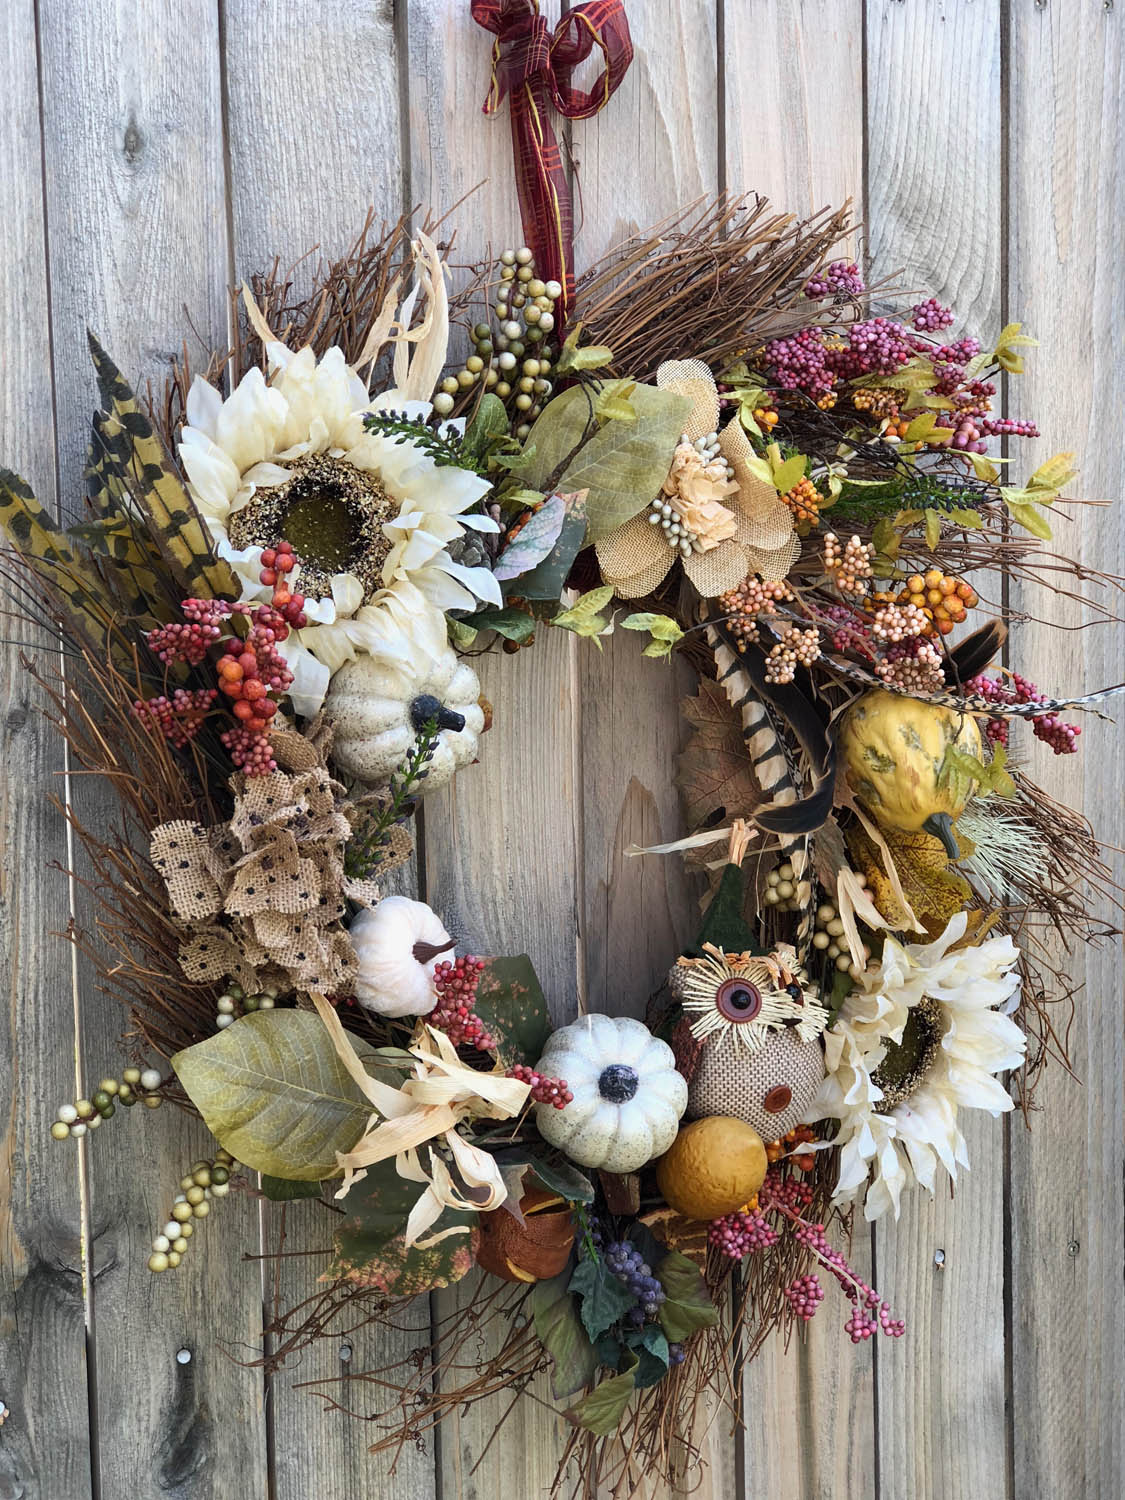 Finished hand made fall wreath hanging on wooden fence outside.